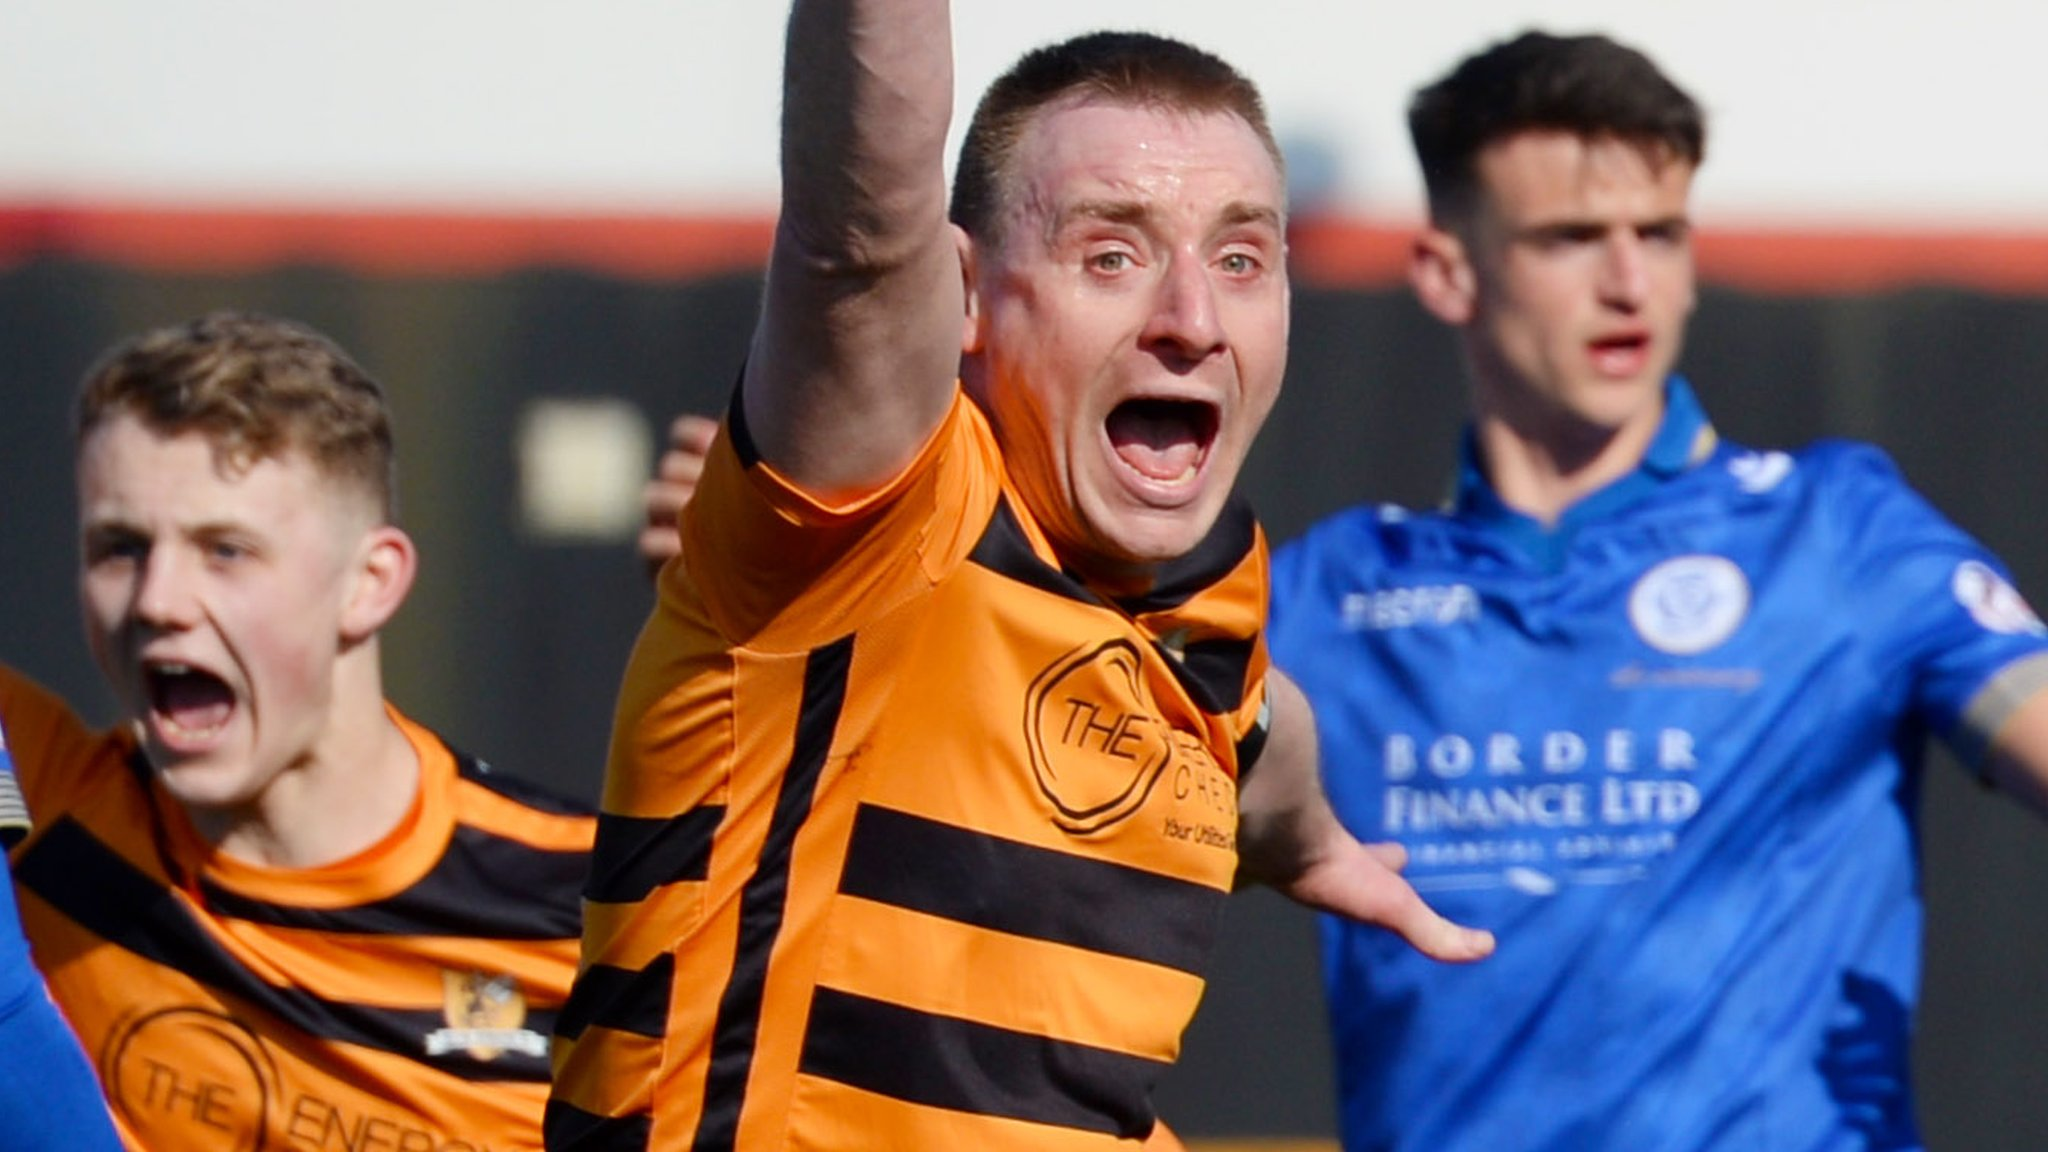 Alloa Ath 1-0 Queen of South: Steven Hetherington goal decisive